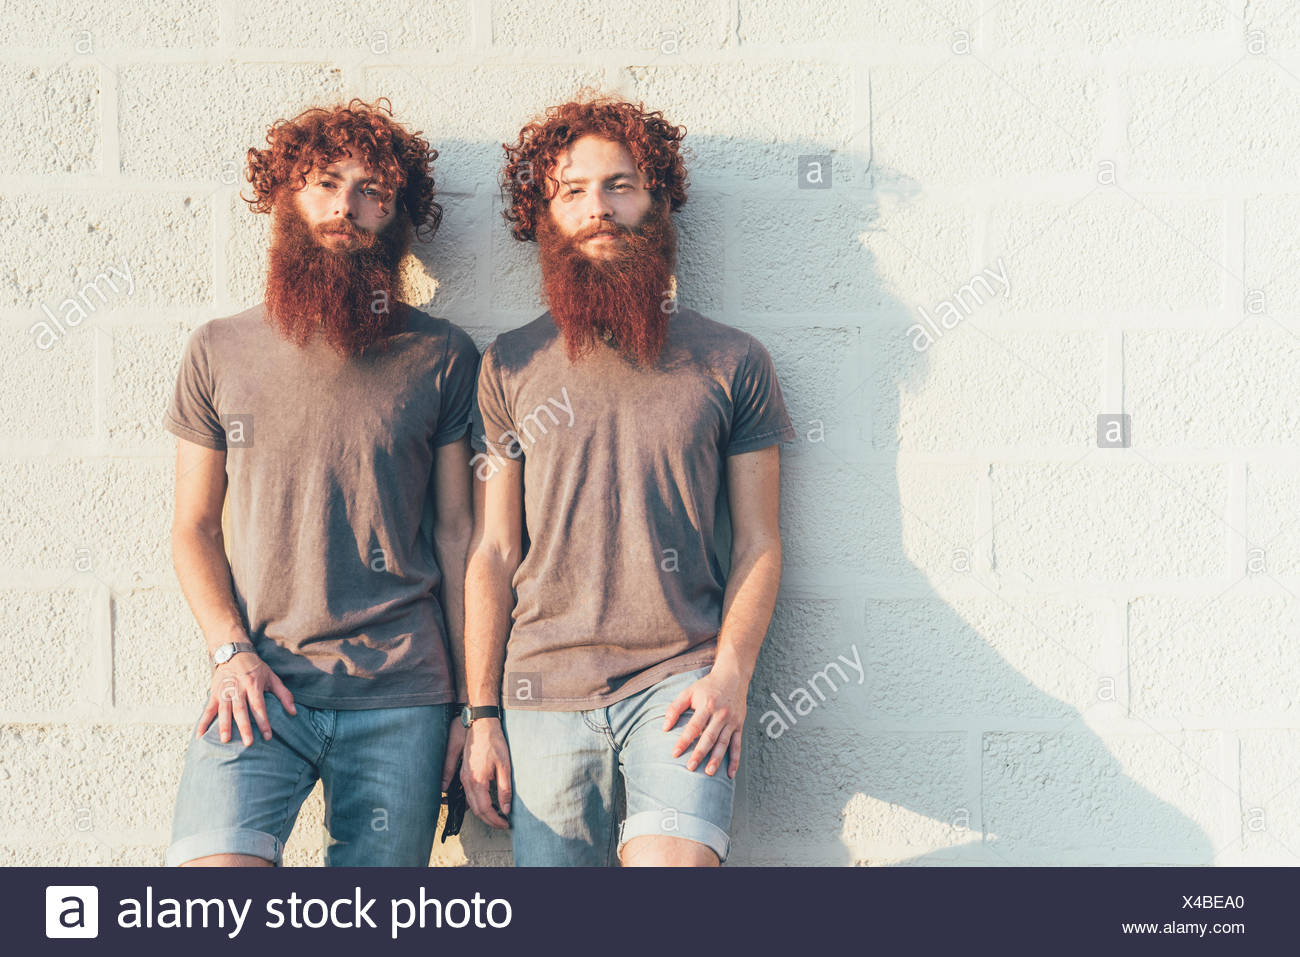 Portrait of identical adult male twins with red hair and beards against wall - Stock Image